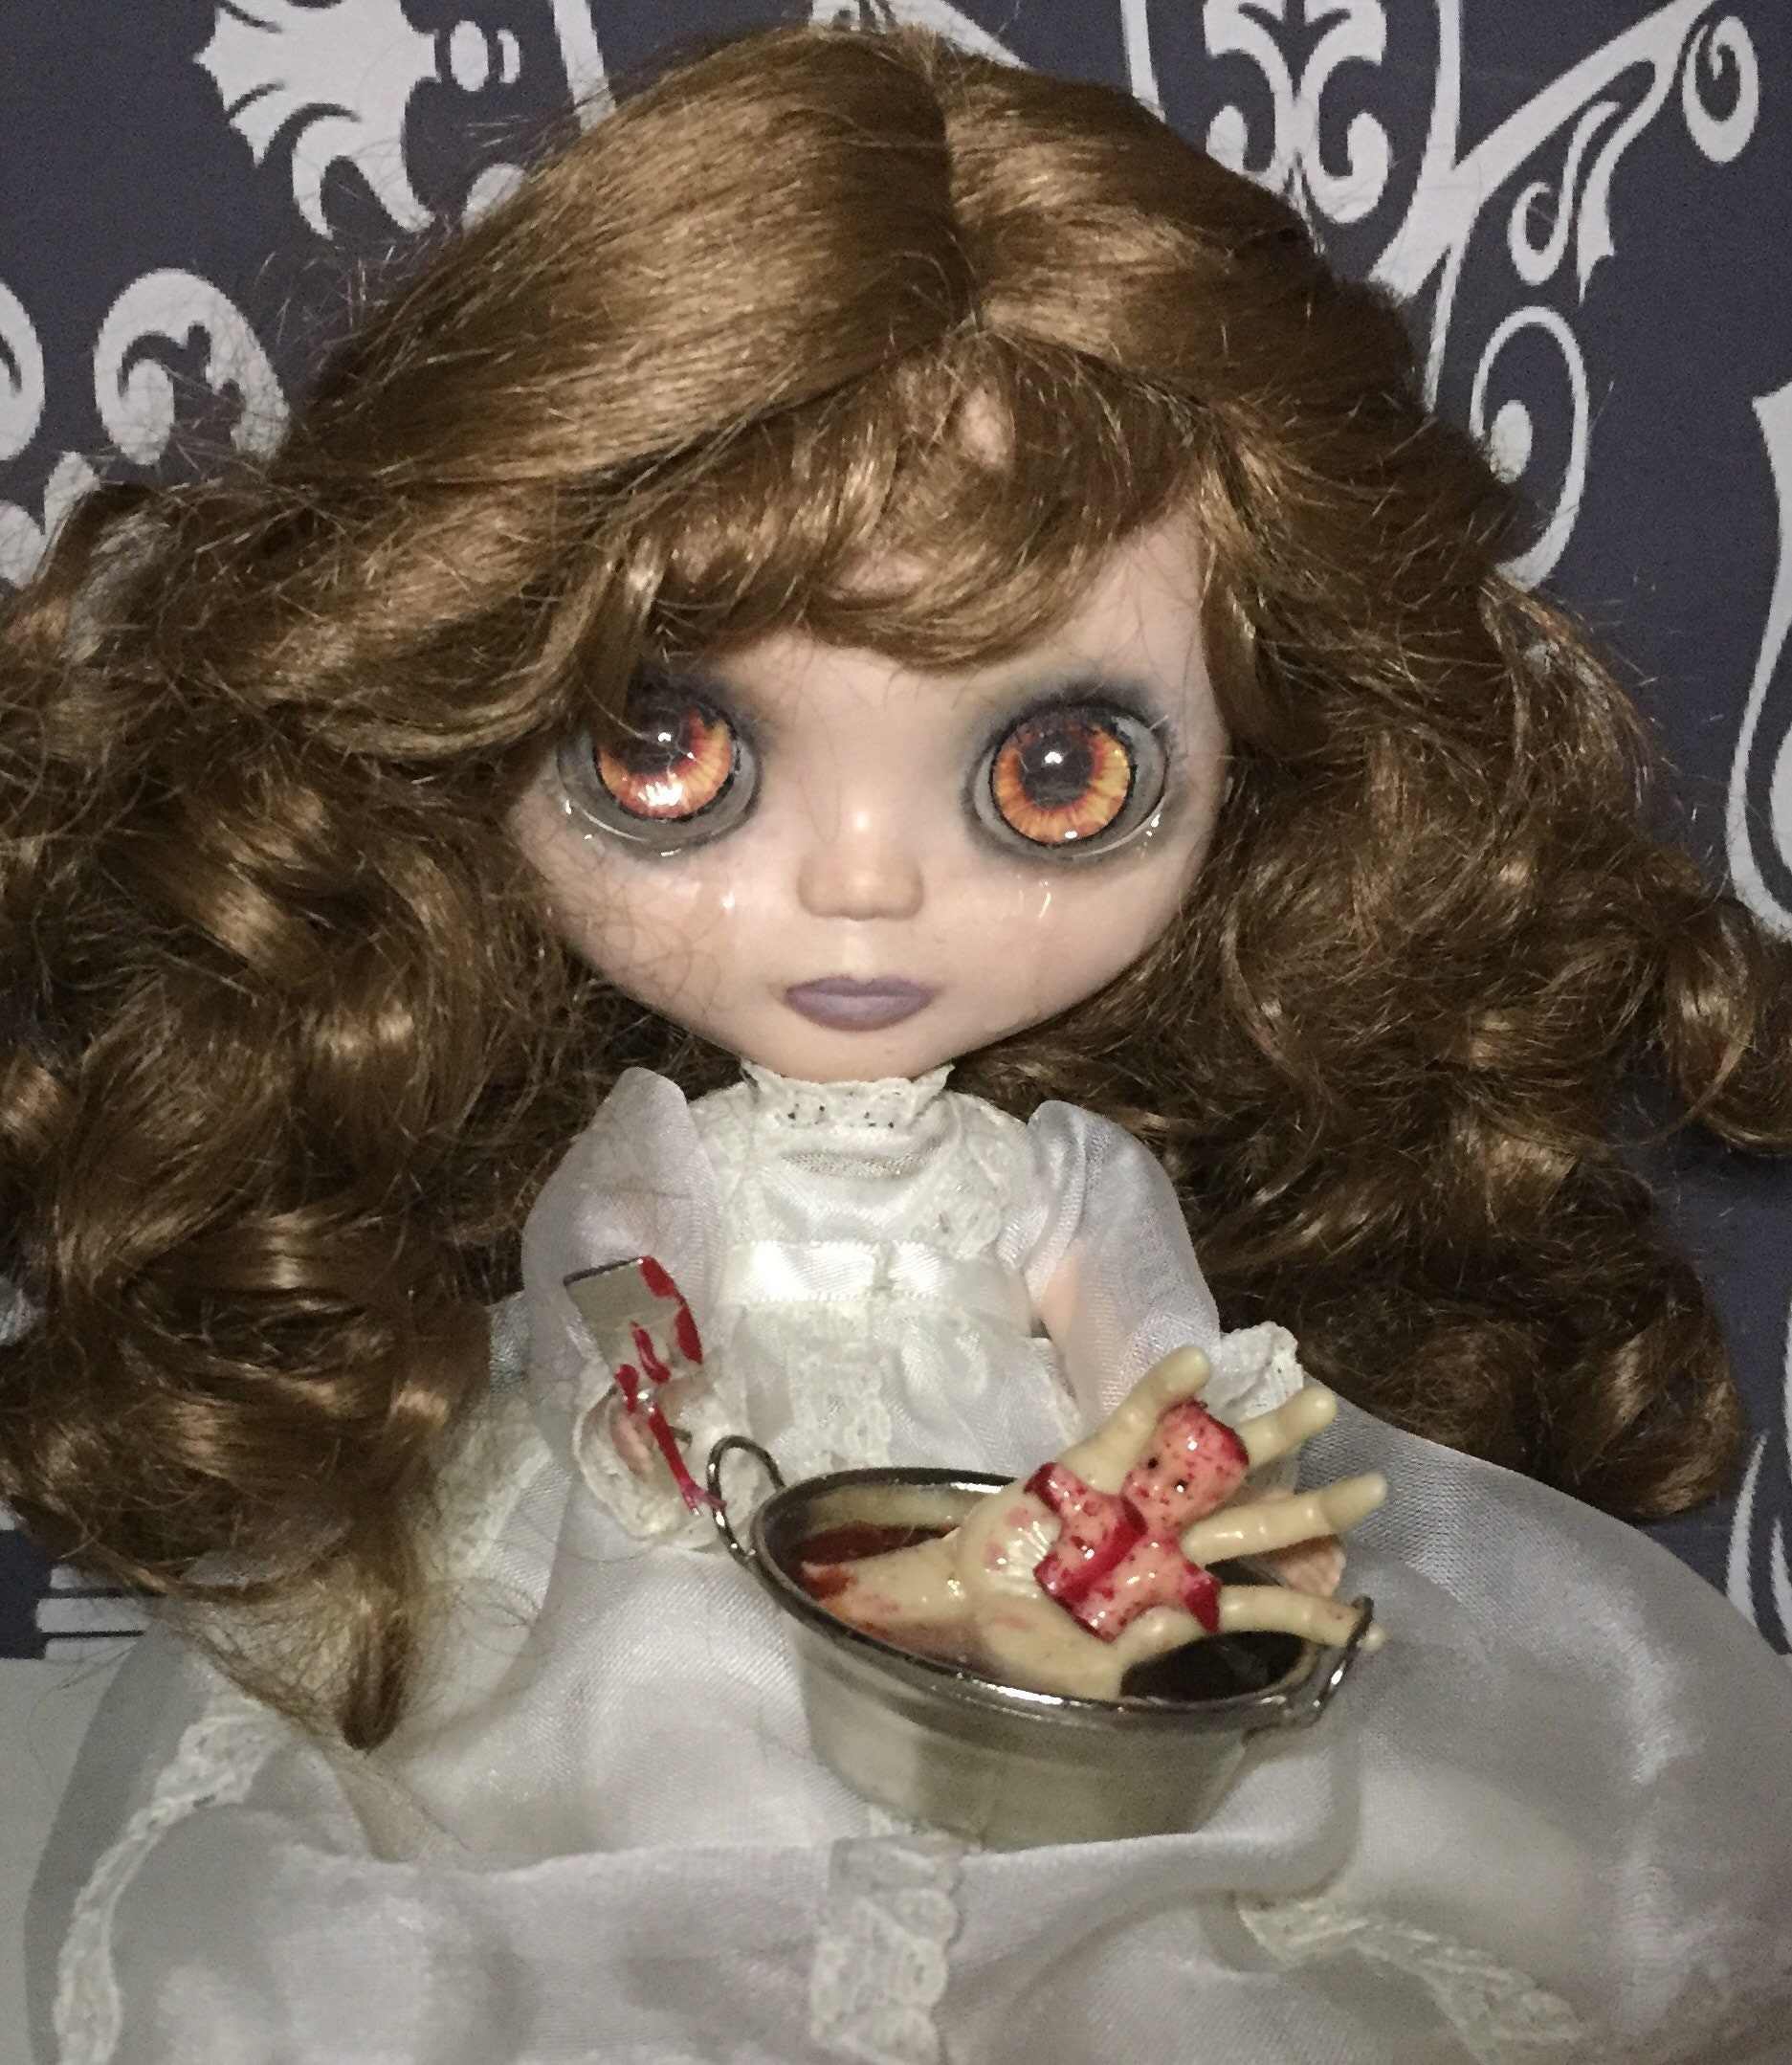 Revenge Blythe Style Doll Fatal Attraction Crying Butcher Knife